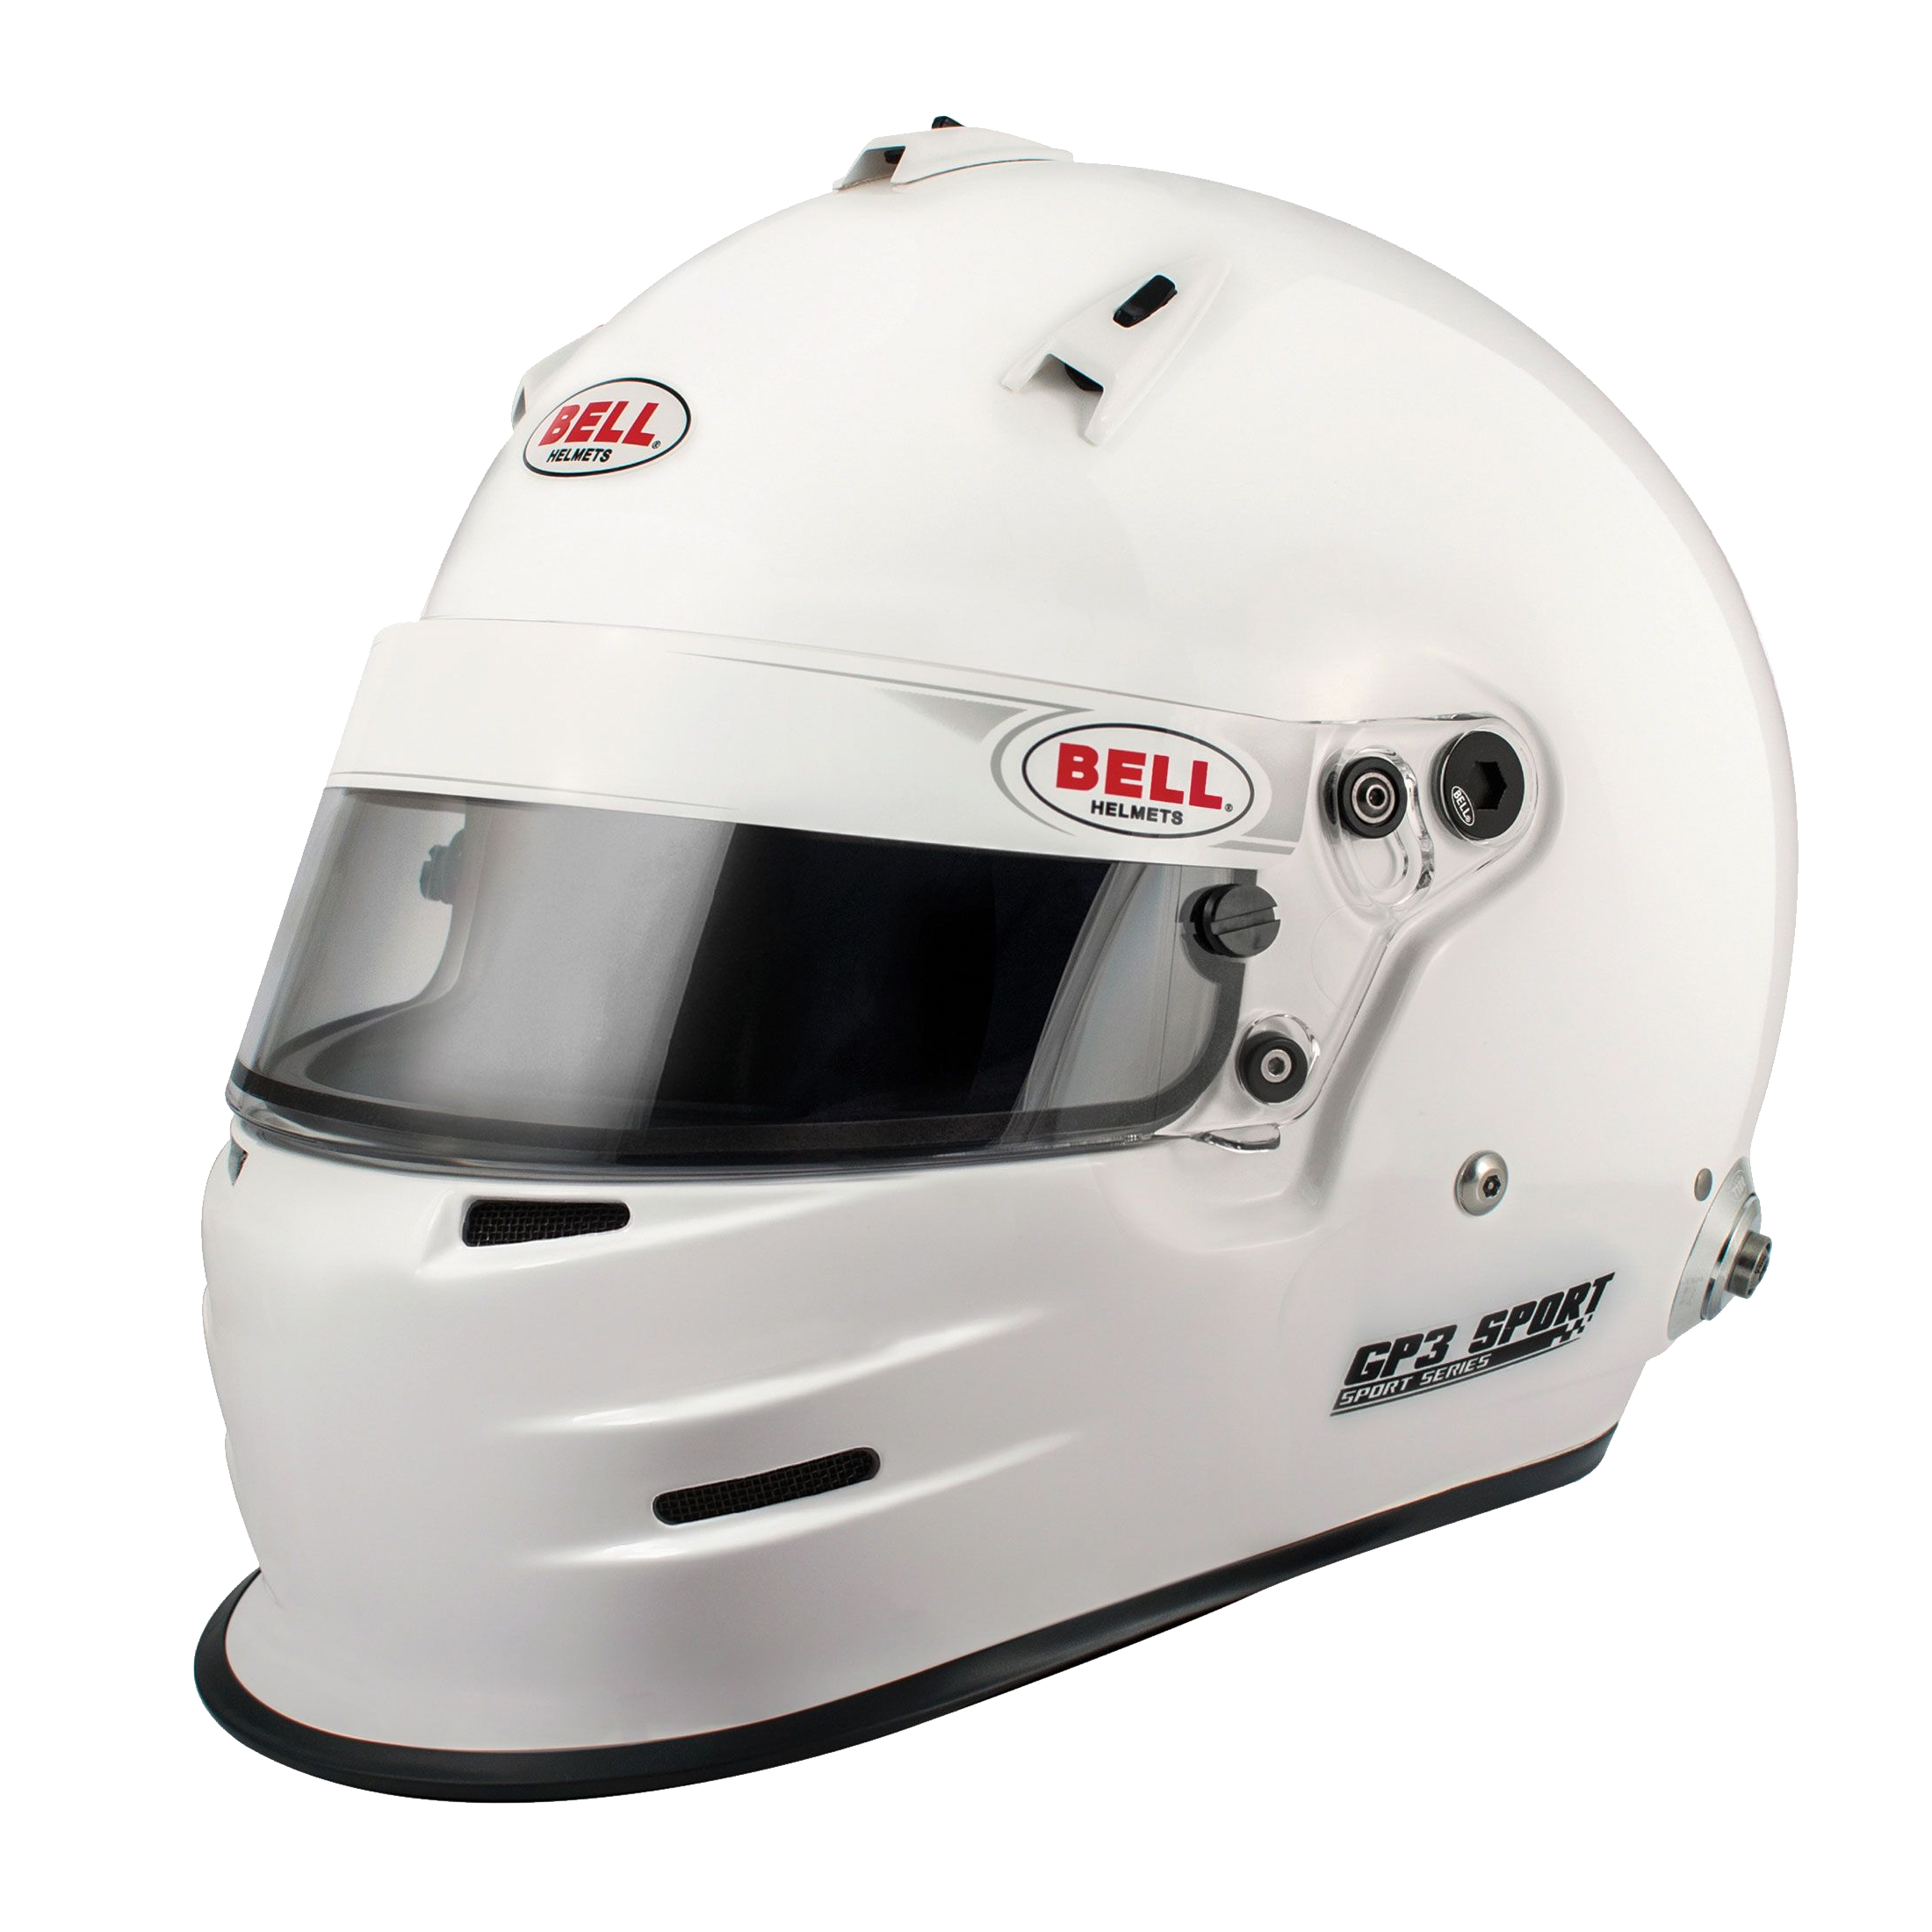 Bell Full Face Helmet >> Bell Gp3 Sport Rally Helmet White Bell Full Face Sport Helmet White